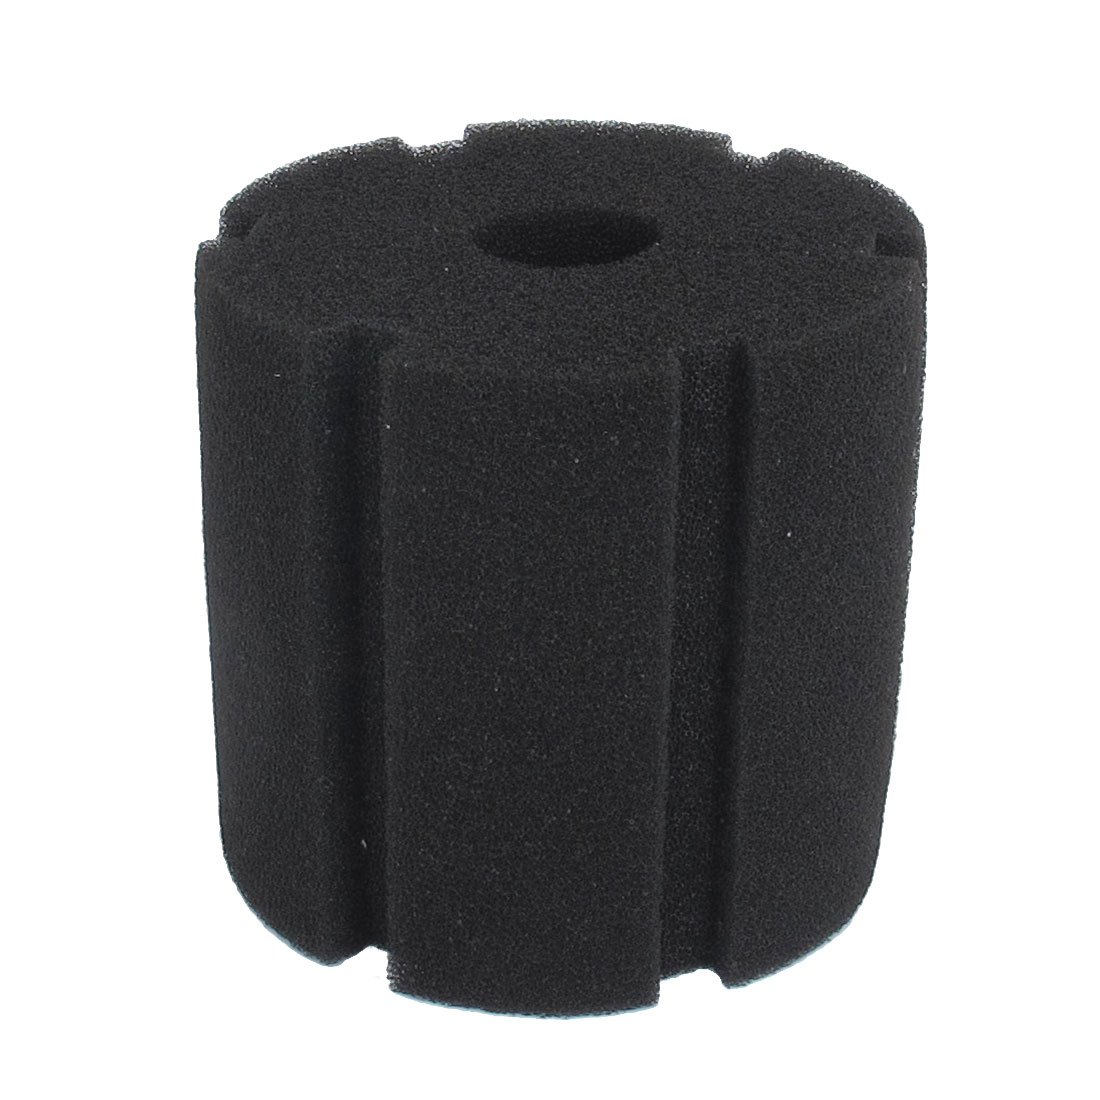 Cylinder Shape Water Filtration Biochemical Air Filter Sponge for Aquarium Fish Tank